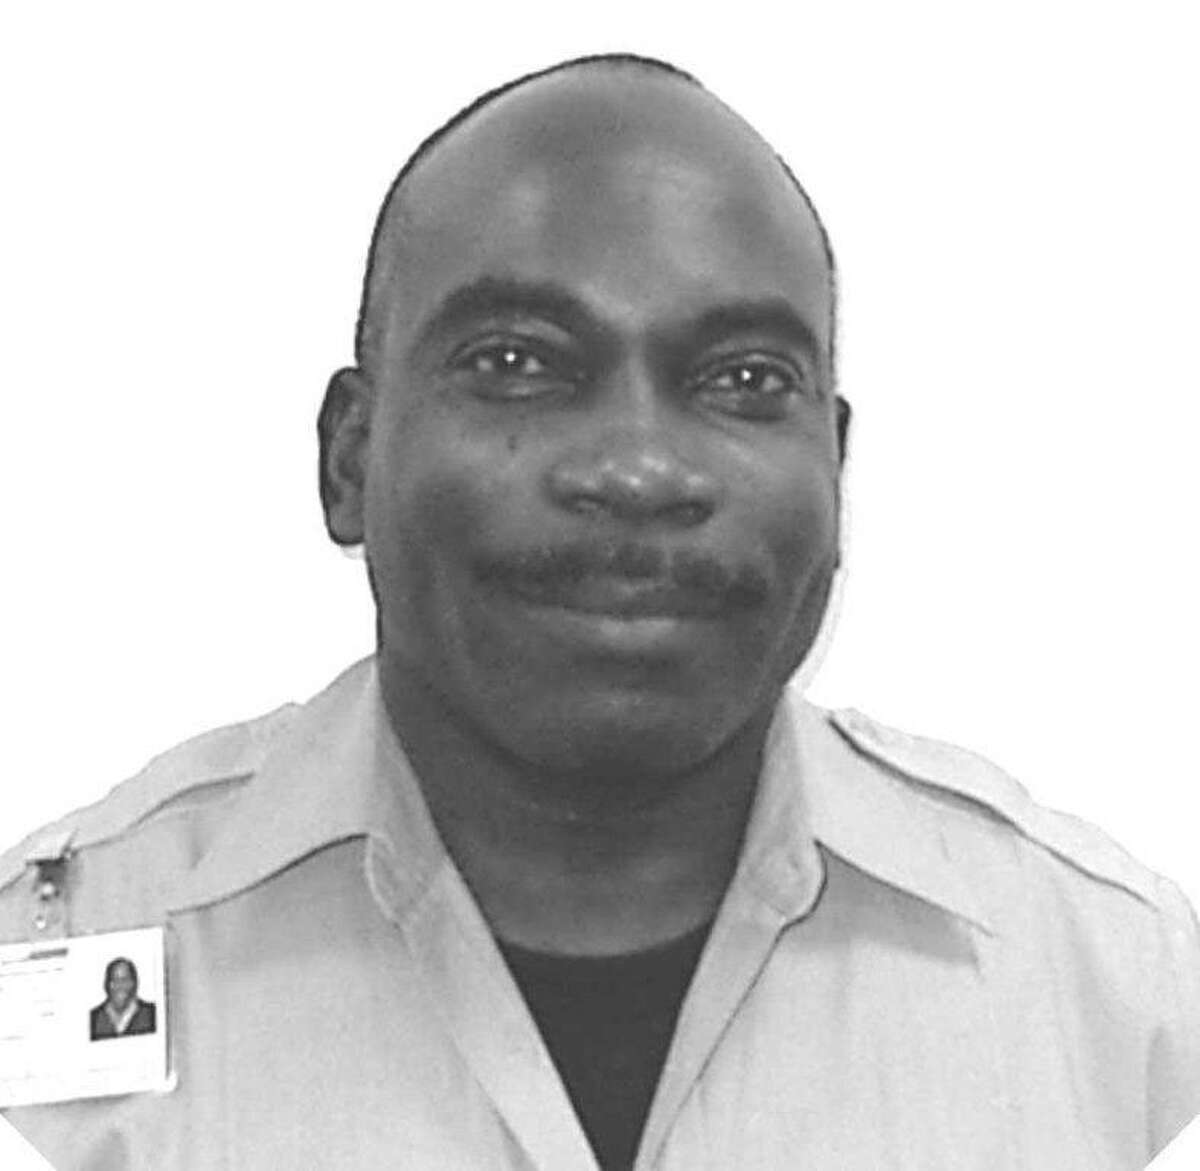 Several gunmen believed responsible for the robbery and murder of Brinks guard Alvin Kinney. Kinney was ambushed and executed by at least three armed assailants wearing body armor and face-shield masks in the Galleria area of Houston, Texas, on February 12, 2015.